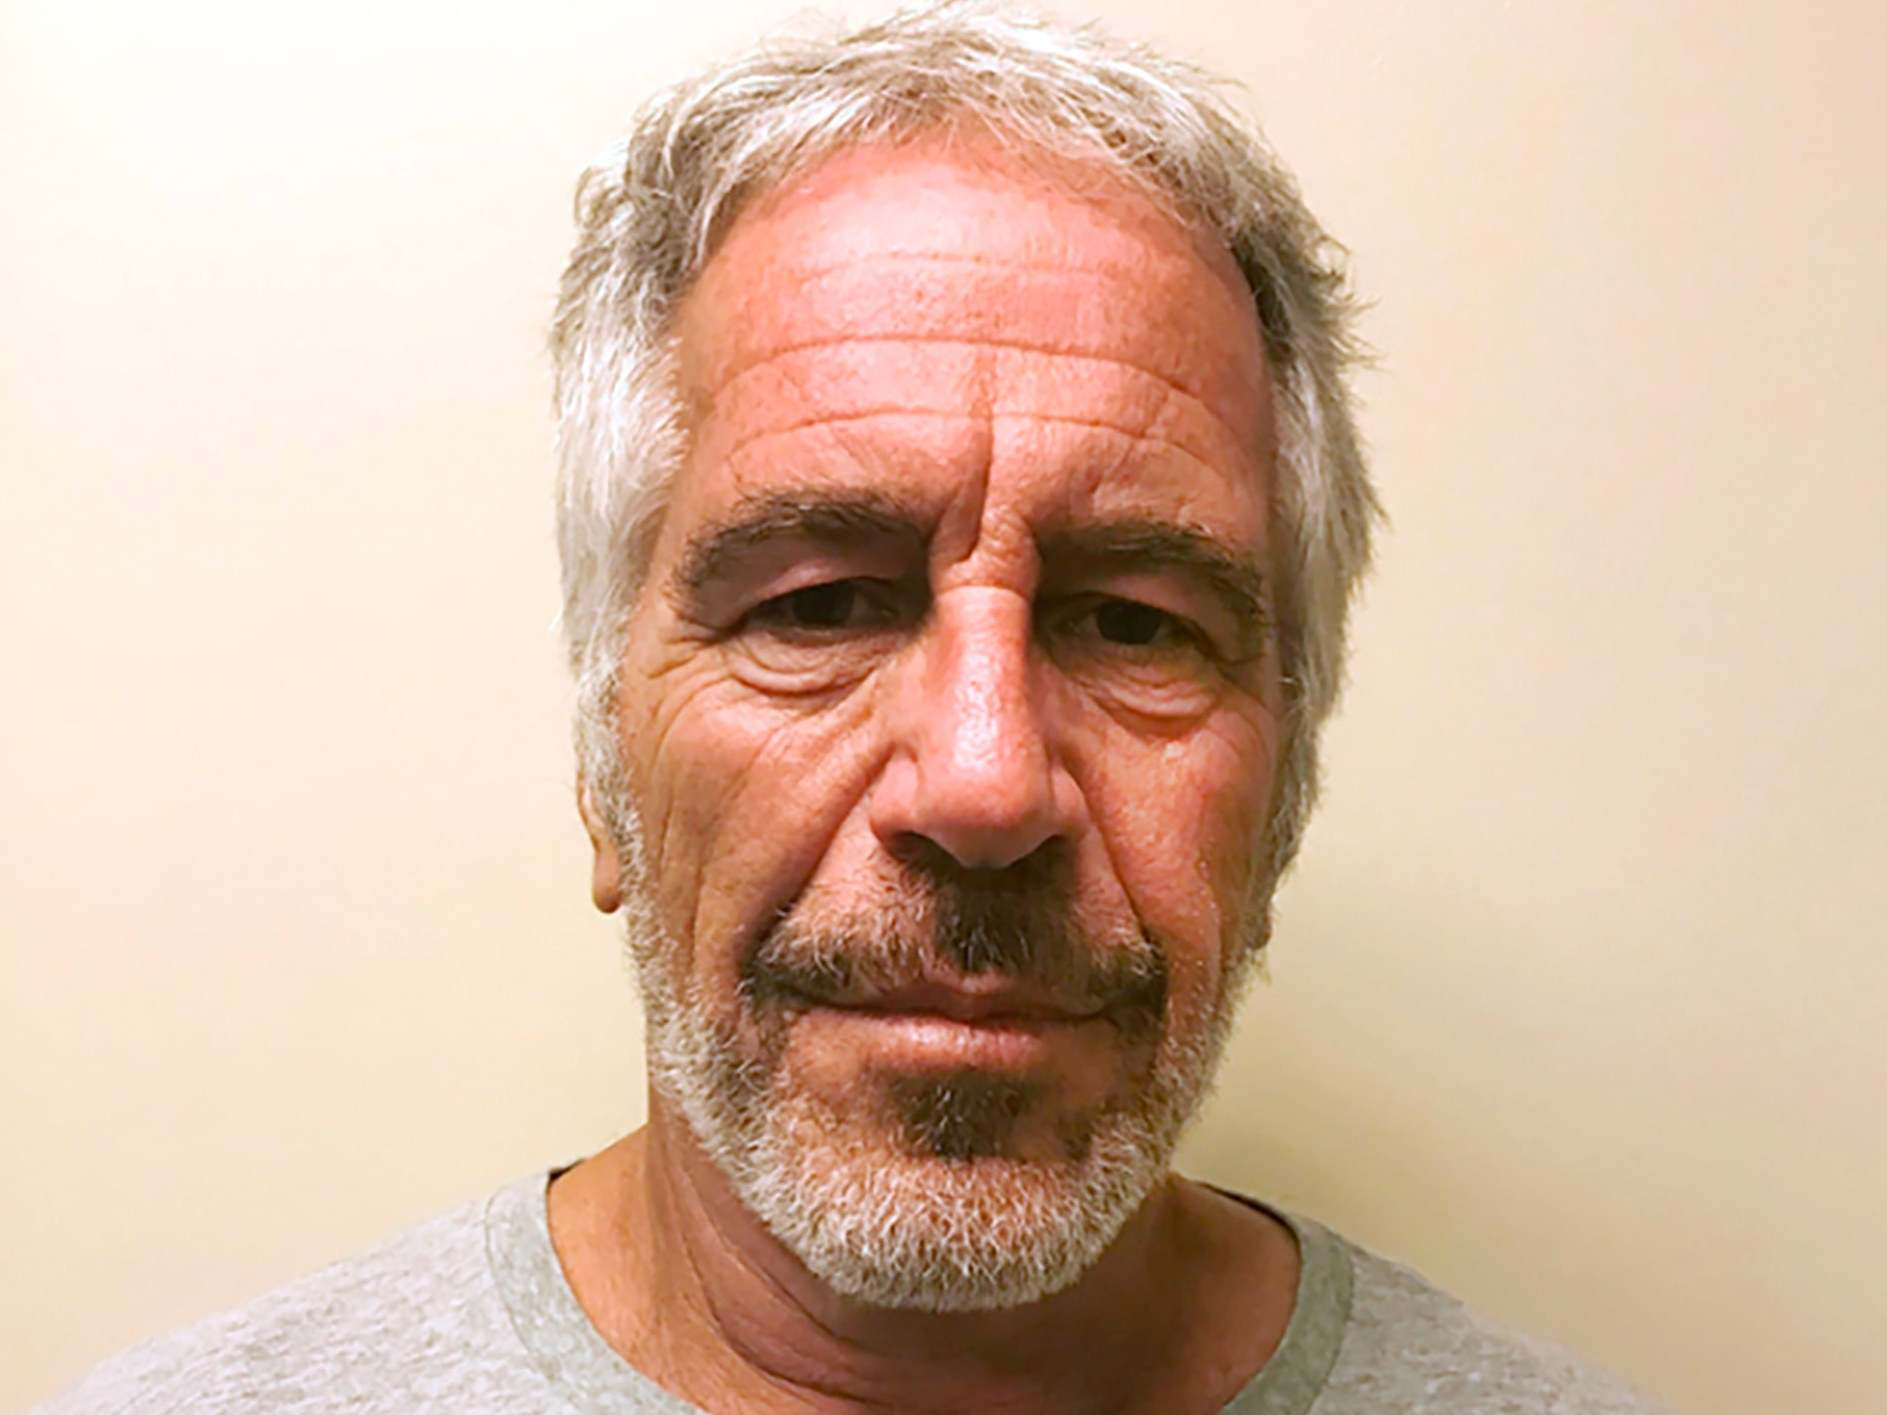 Jeffrey Epstein death: Two guards 'fell asleep' then falsified records after inmate removed from paedophile financier's cell